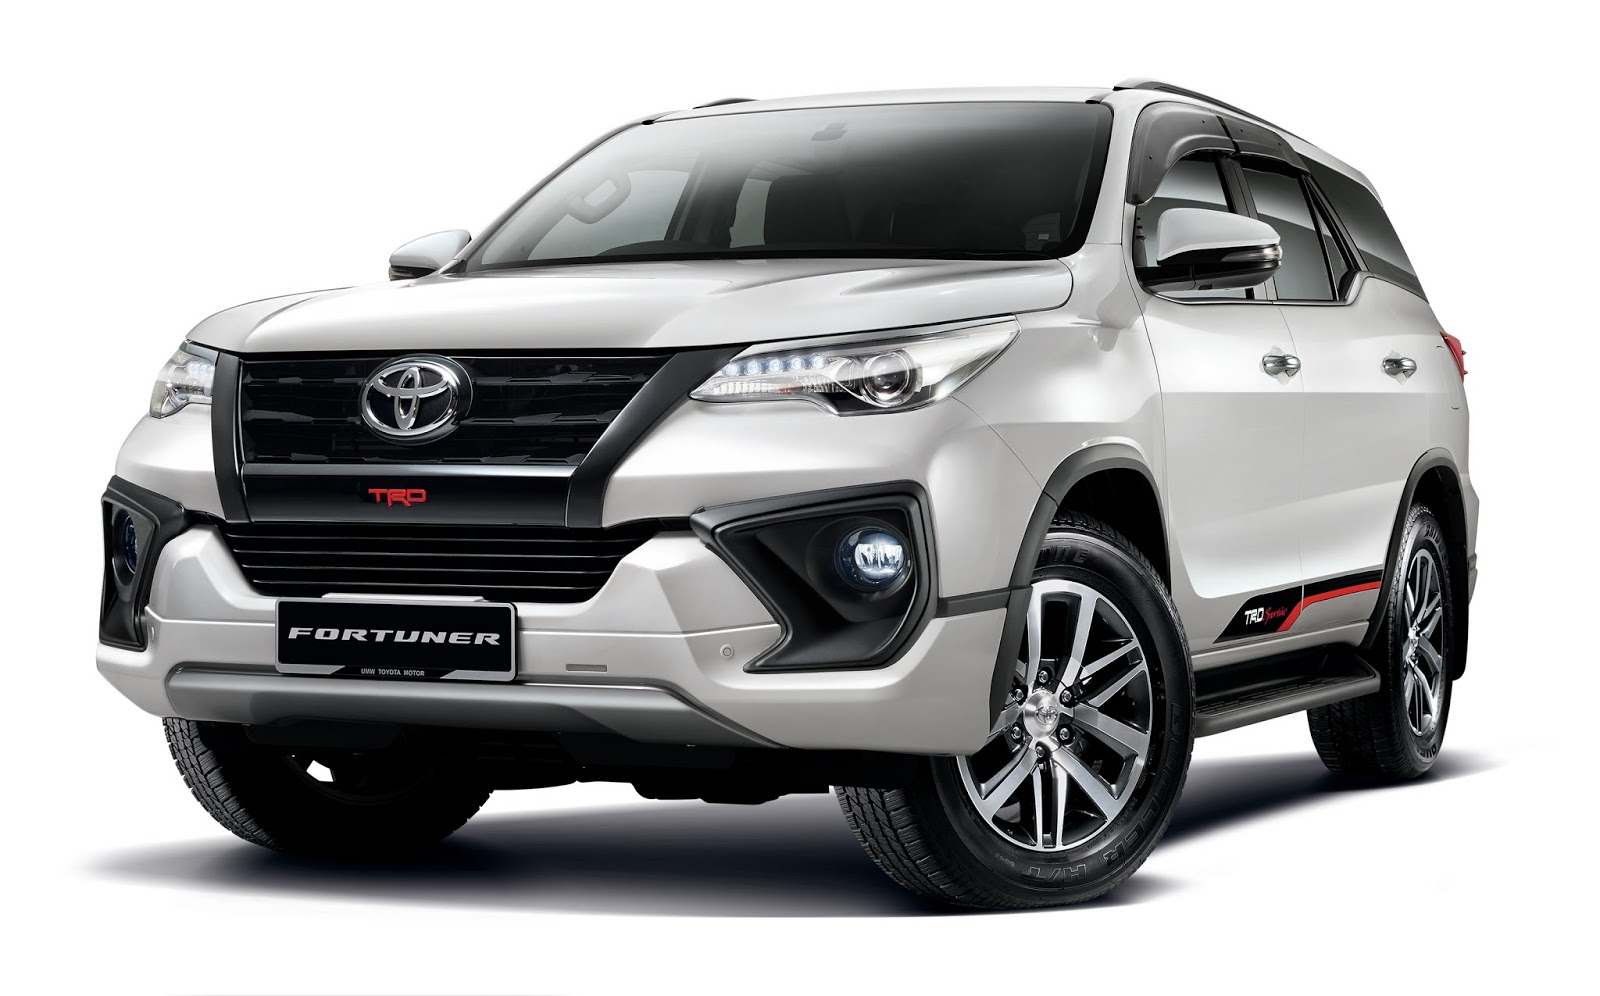 Umw toyota are taking bookings for new variants of the toyota fortuner 2 4 vrz 4x4 4x2 the upgraded toyota hilux and the toyota innova 2 0x